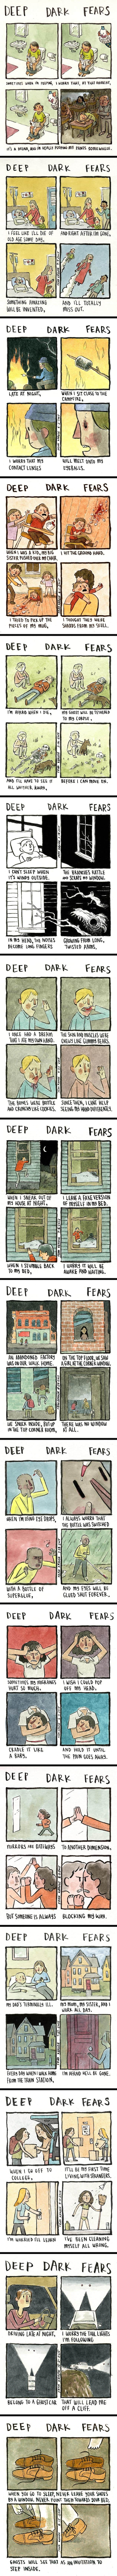 Our Deep Dark Fears As Comic Strips - Part Two